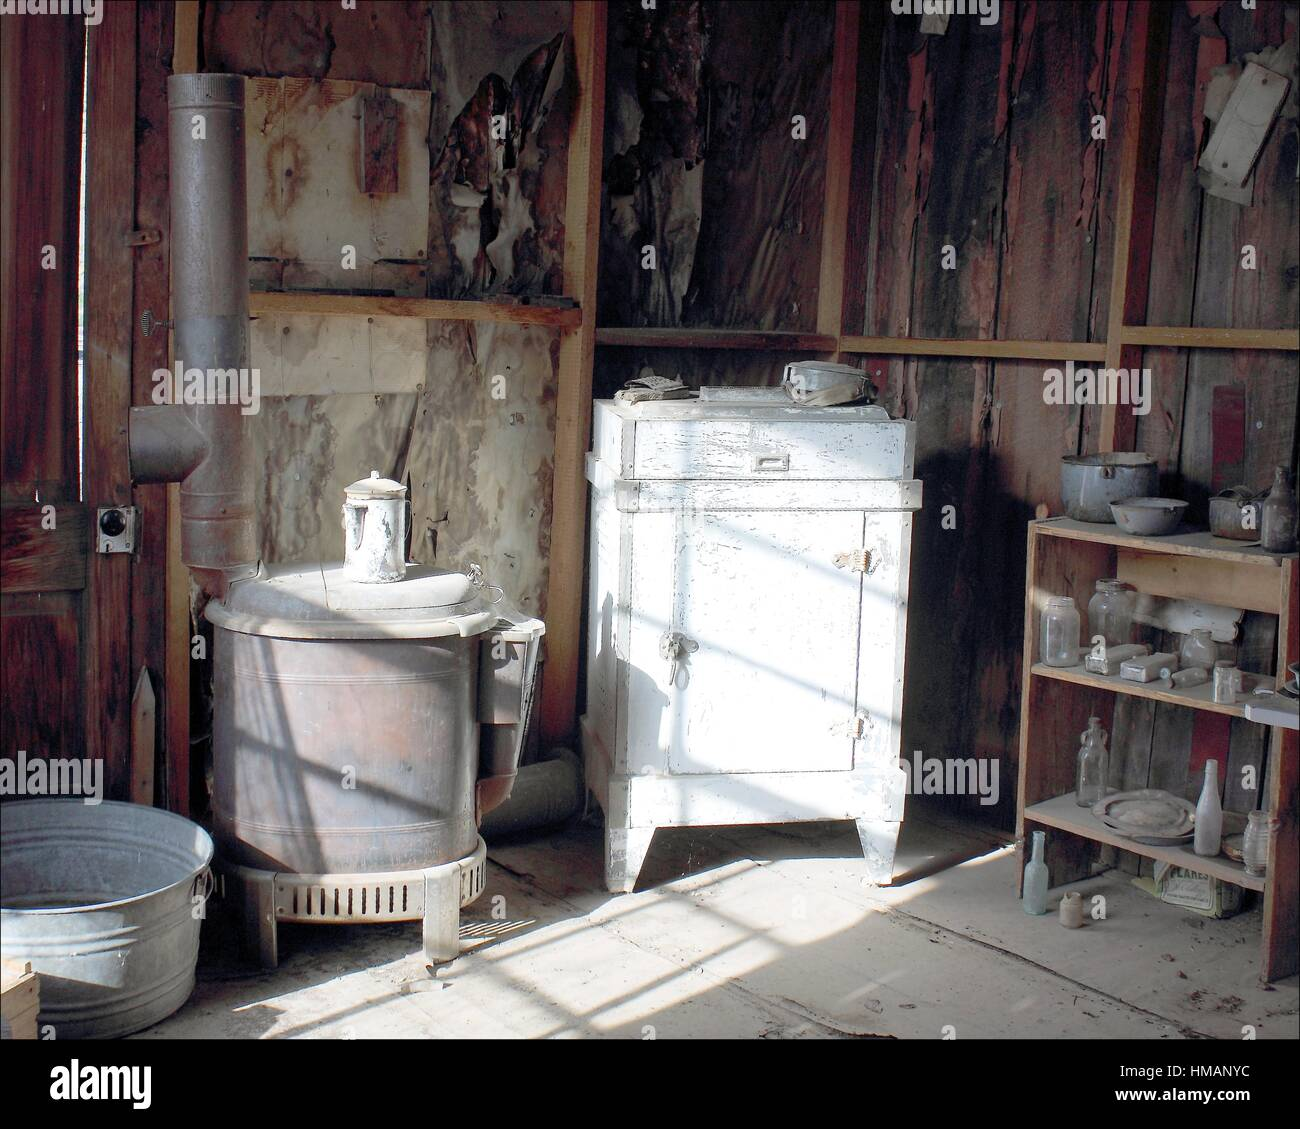 This kitchen in an old cabin in Coloma, California, silently waits for its owner, possibly a miner who never found - Stock Image